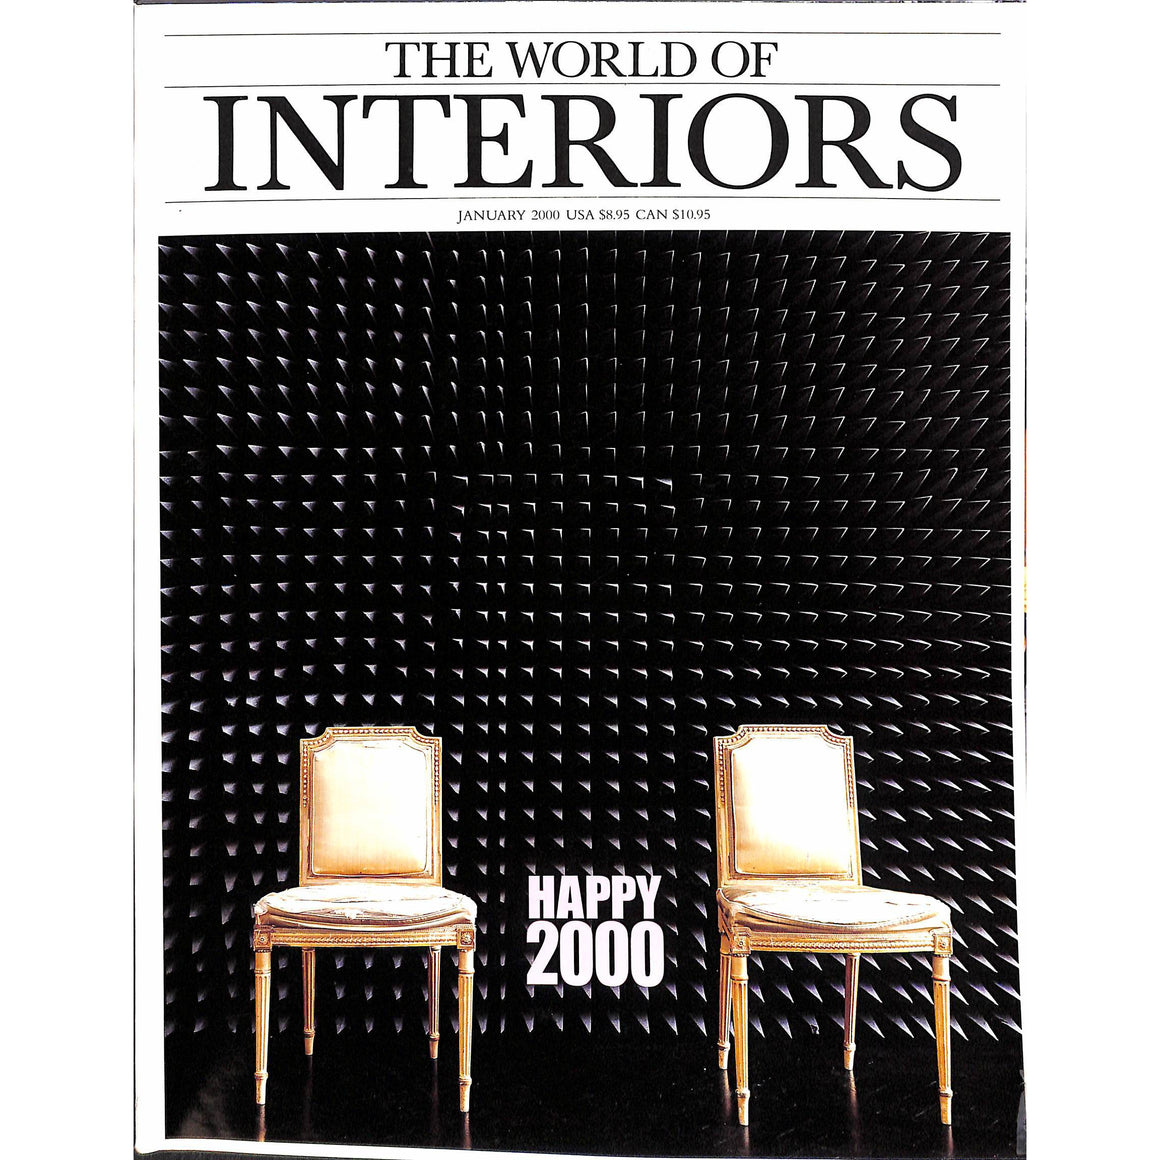 The World of Interiors January 2000